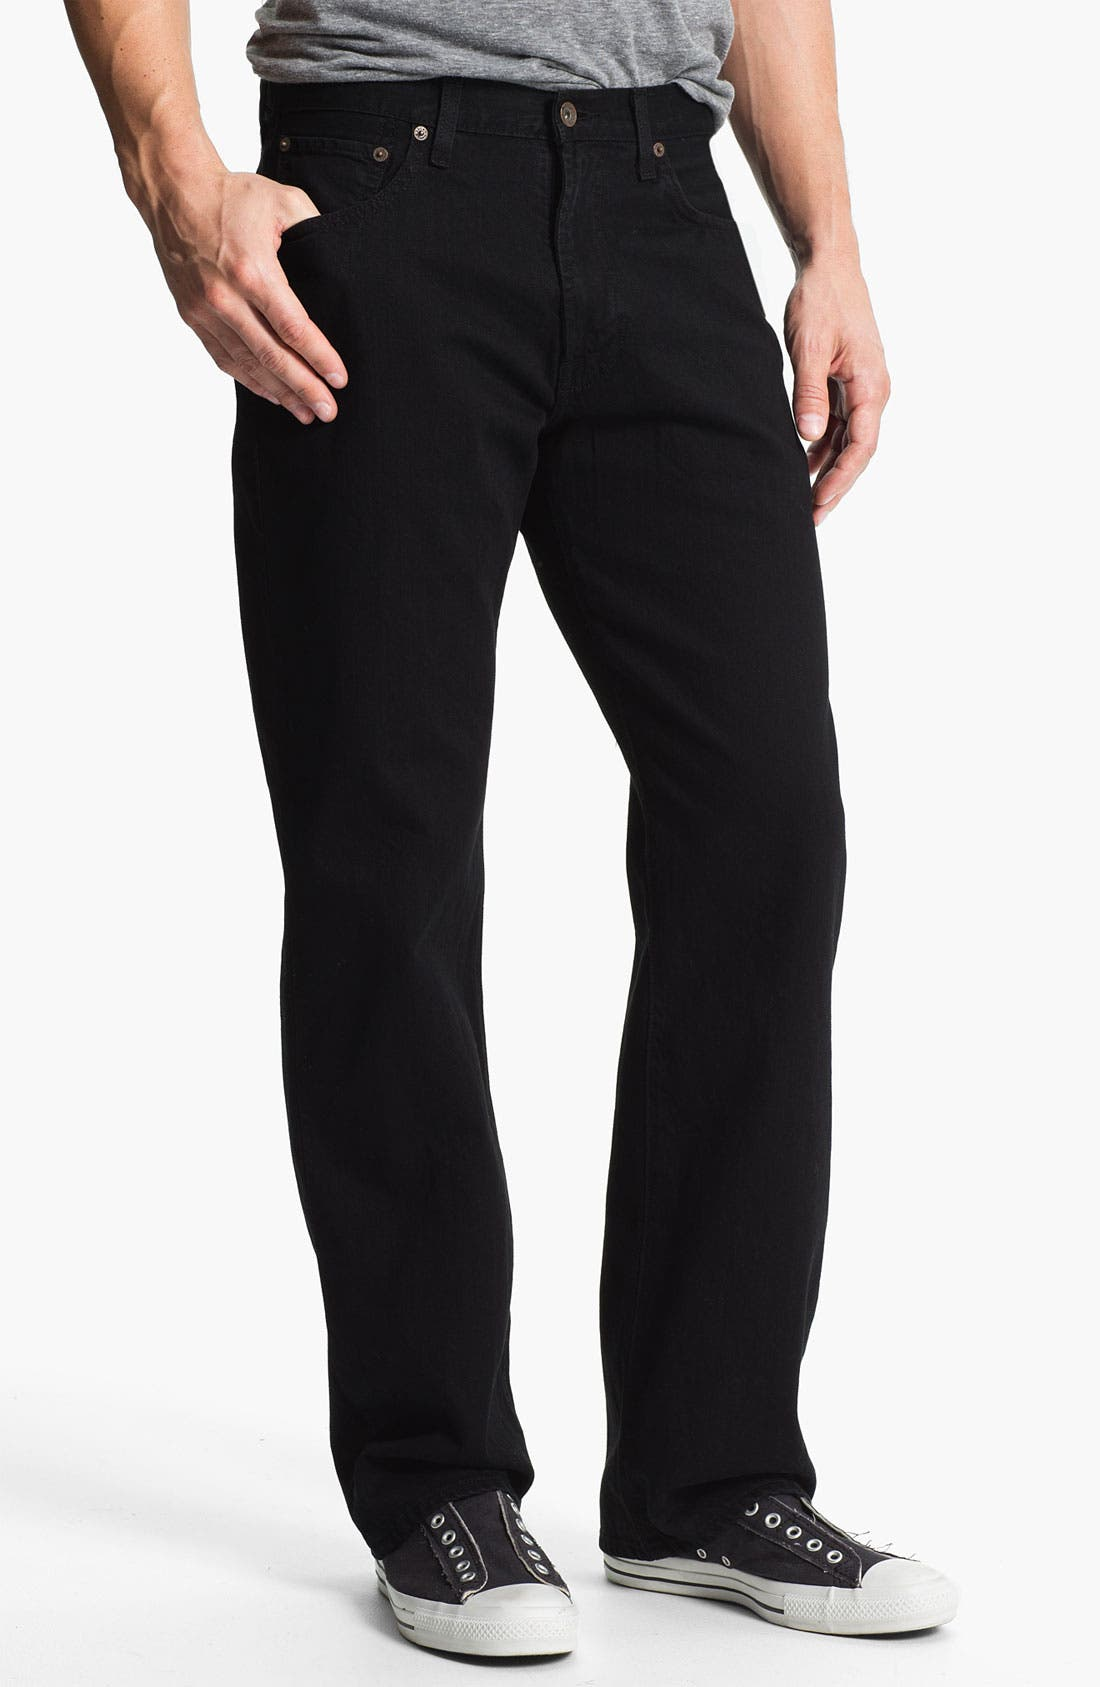 Alternate Image 1 Selected - Lucky Brand '184' Relaxed Straight Leg Jeans (Jet Black)